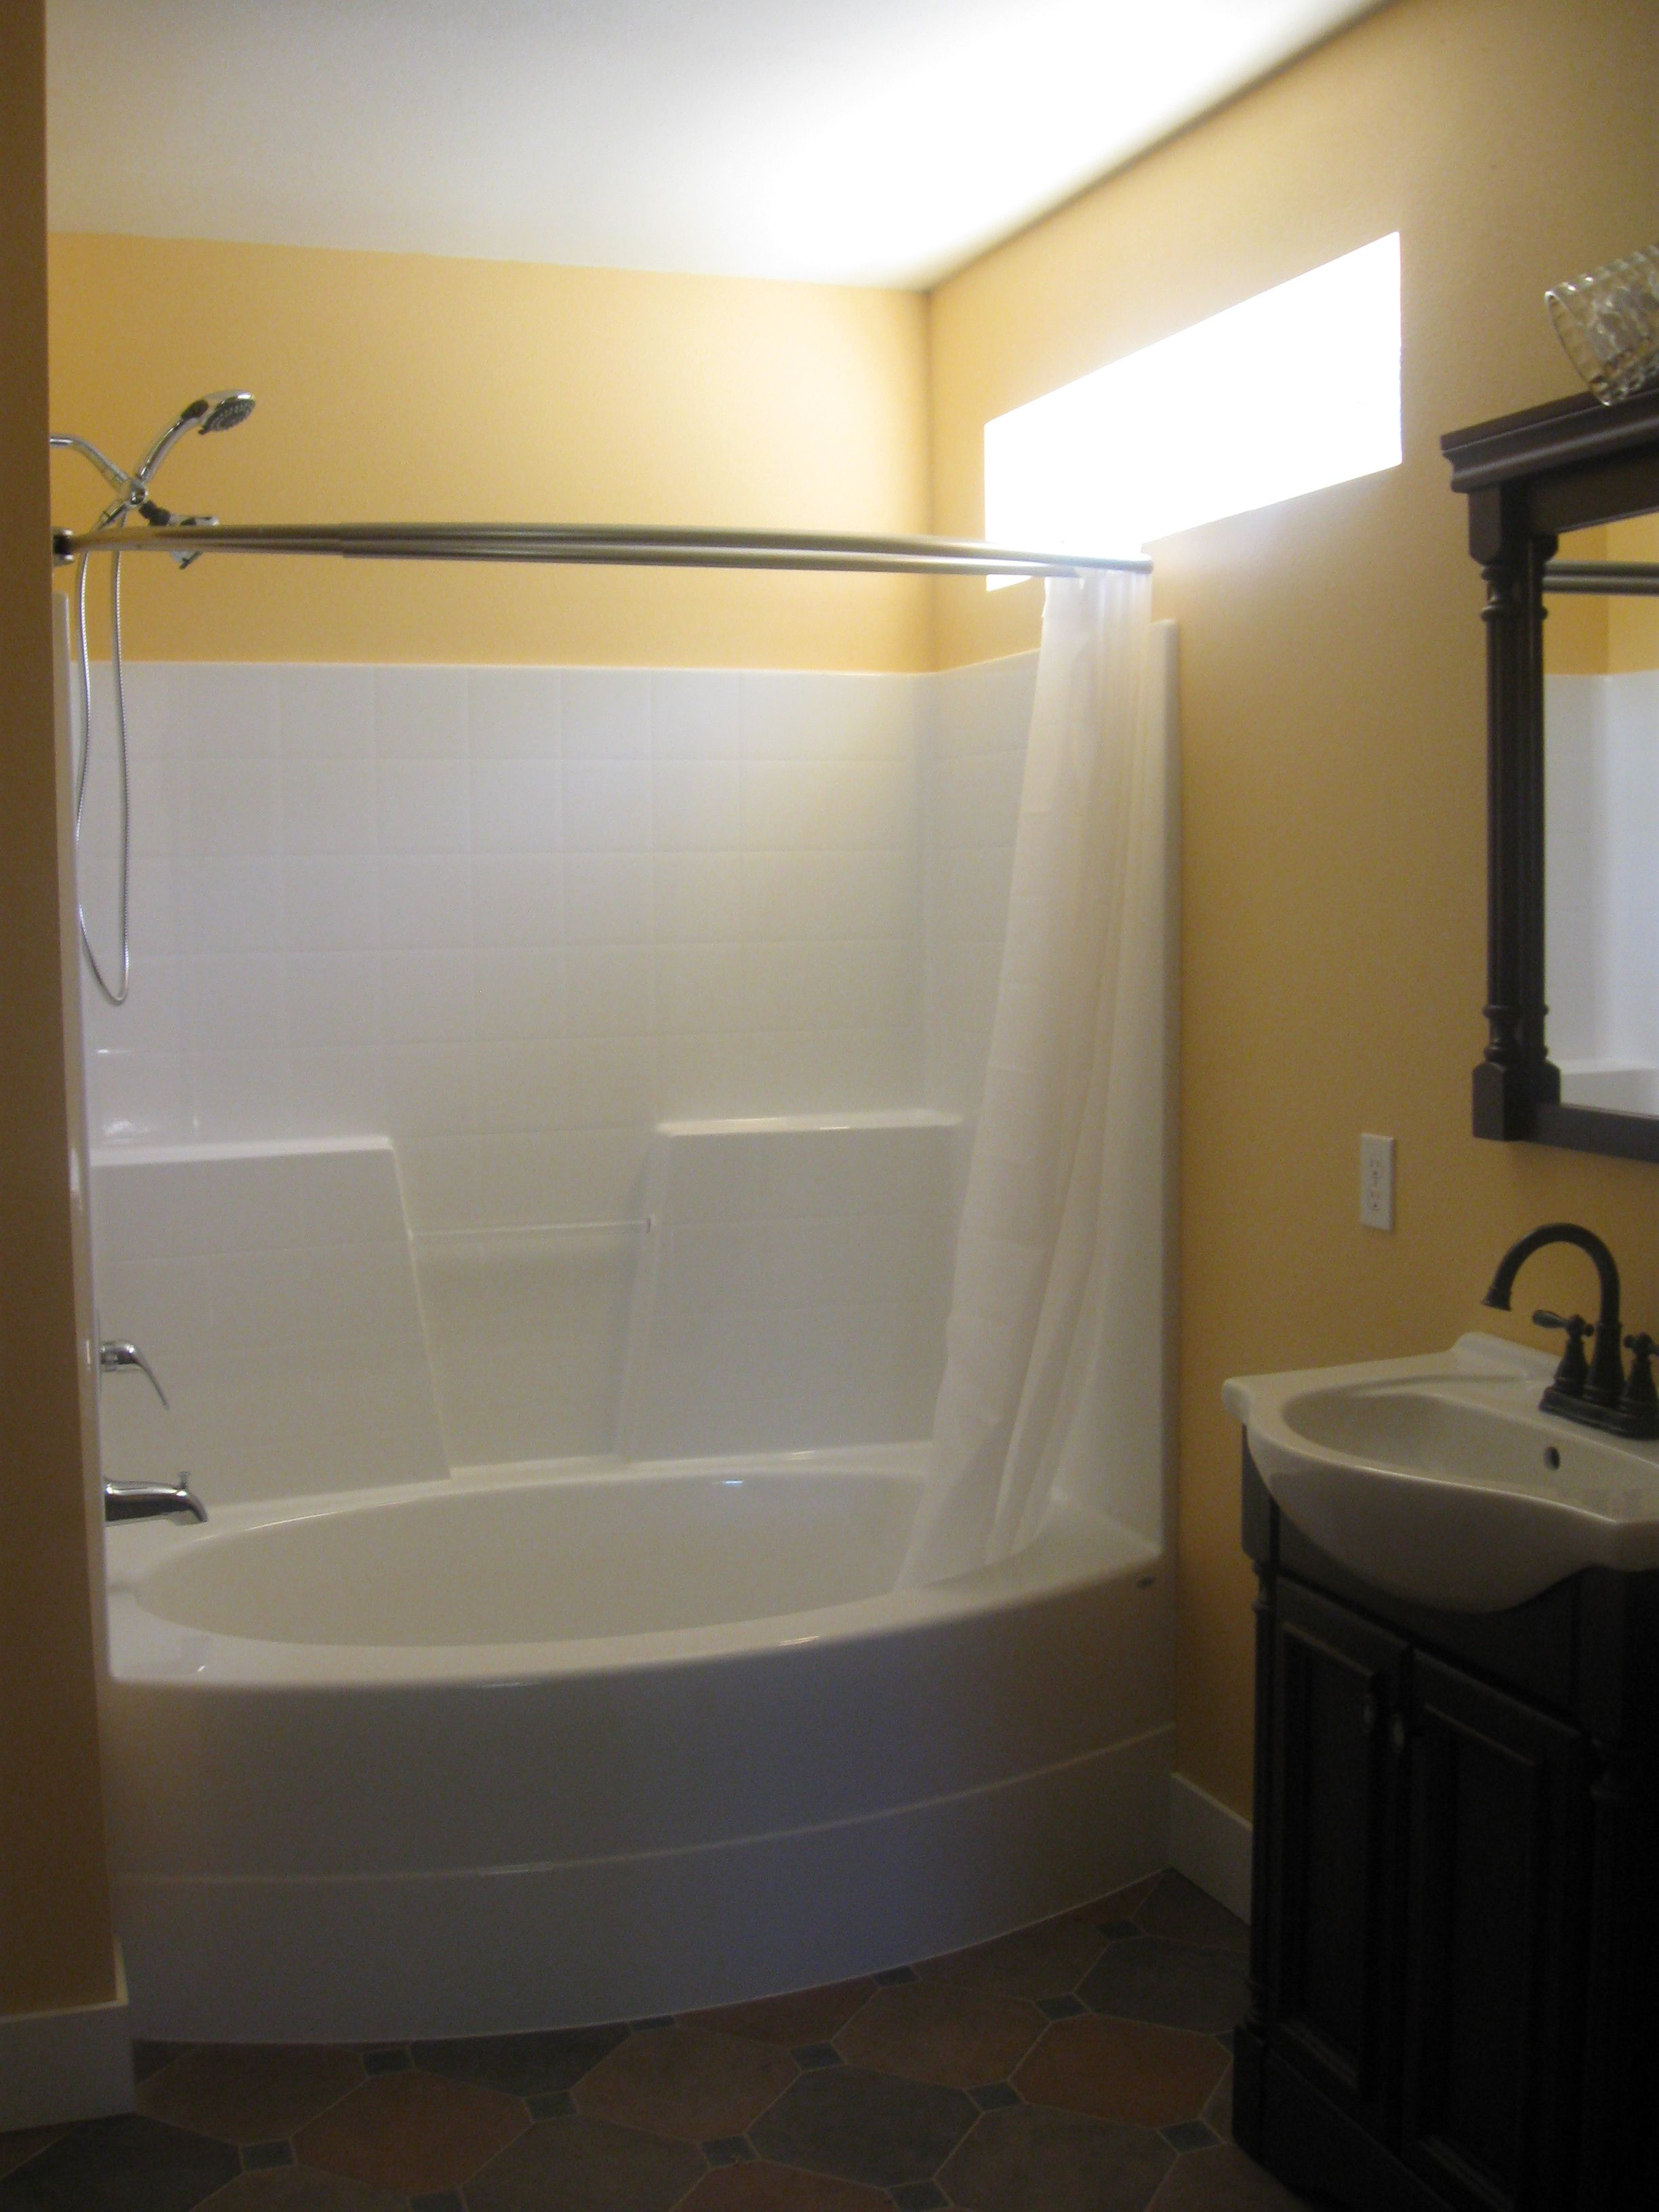 Bathroom Admirable Yellow Wall Paint Bathtub And Shower